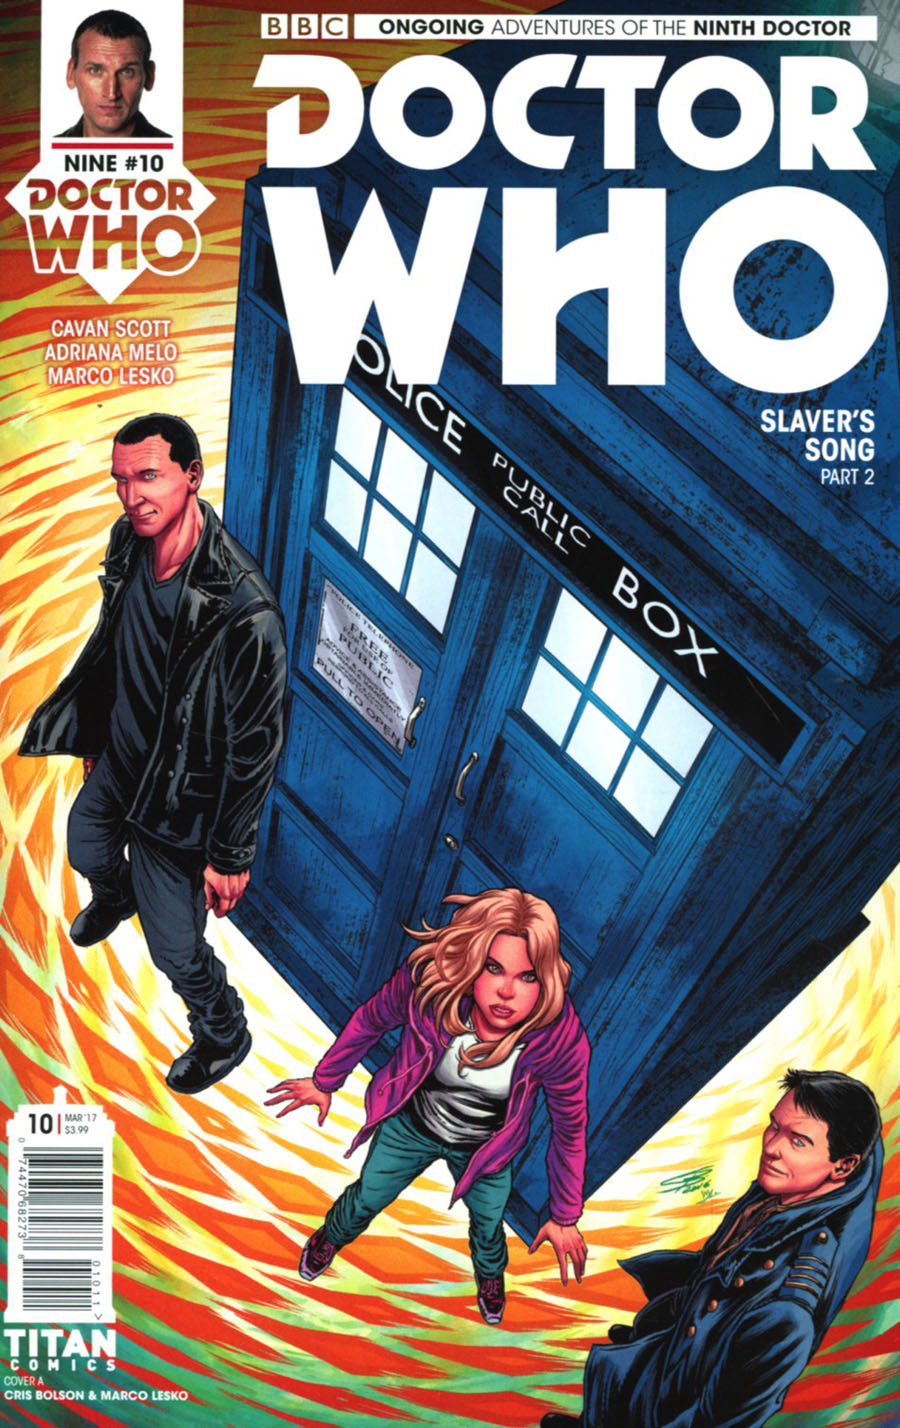 Doctor Who 9th Doctor Vol 2 #10 Cover A Regular Chris Bolson & Marco Lesko Cover